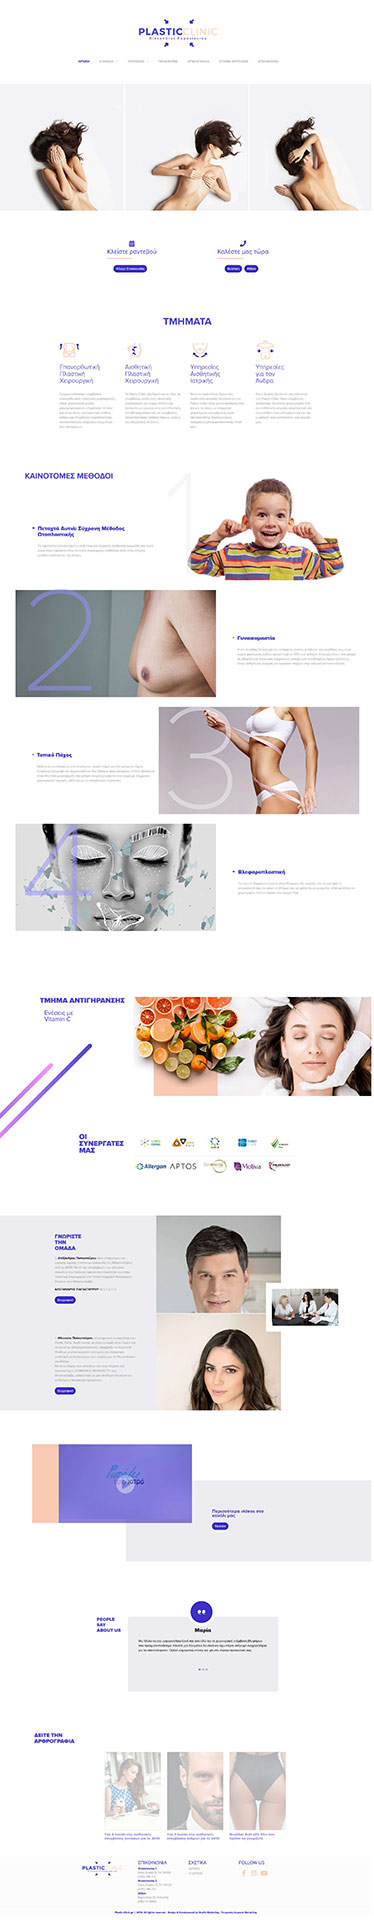 plastic-clinic-website-mockup-1